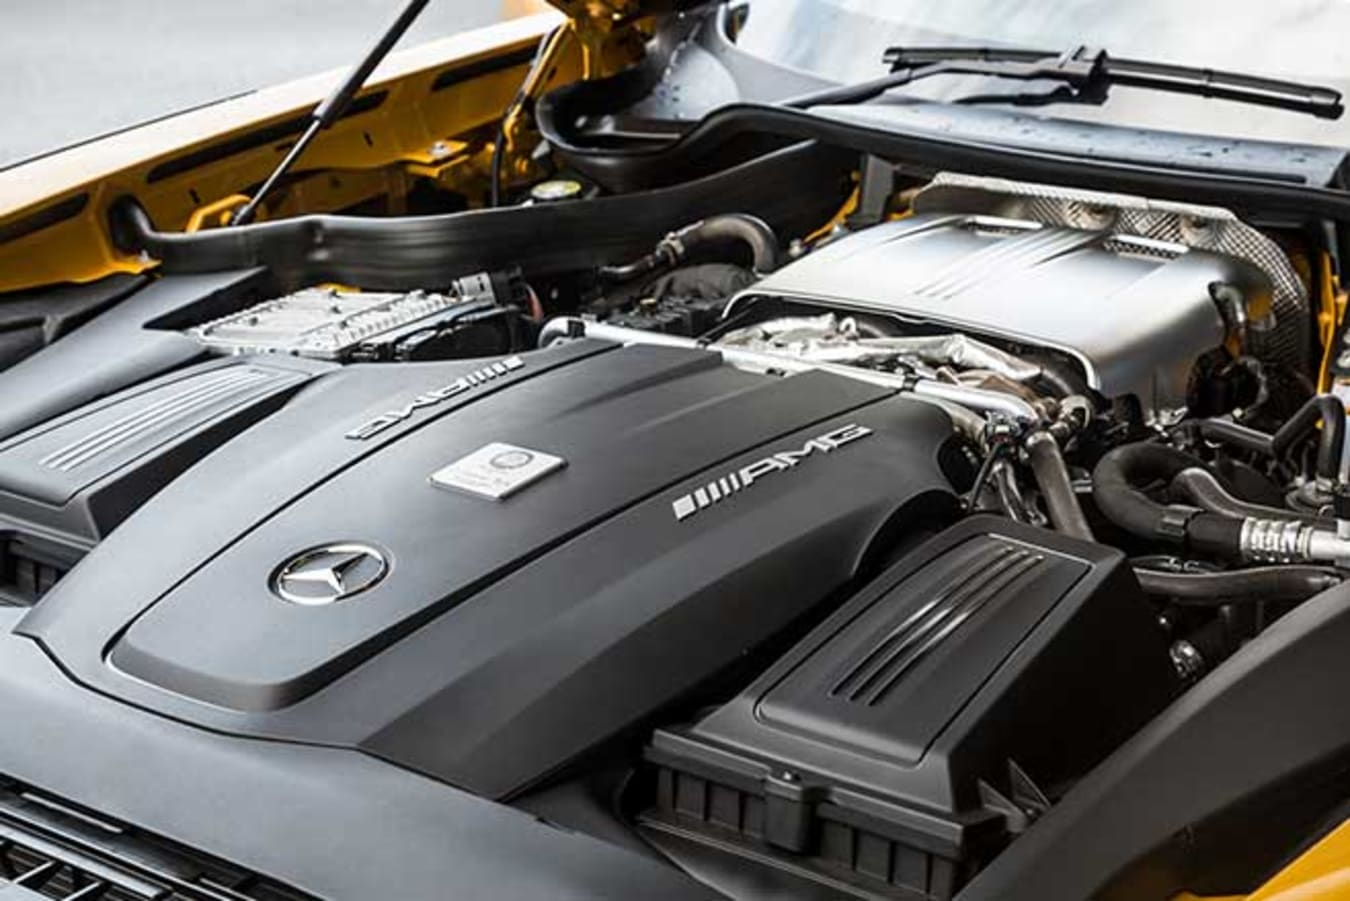 The 4.0-litre twin-turbo V8 produces 430kW and 700Nm.